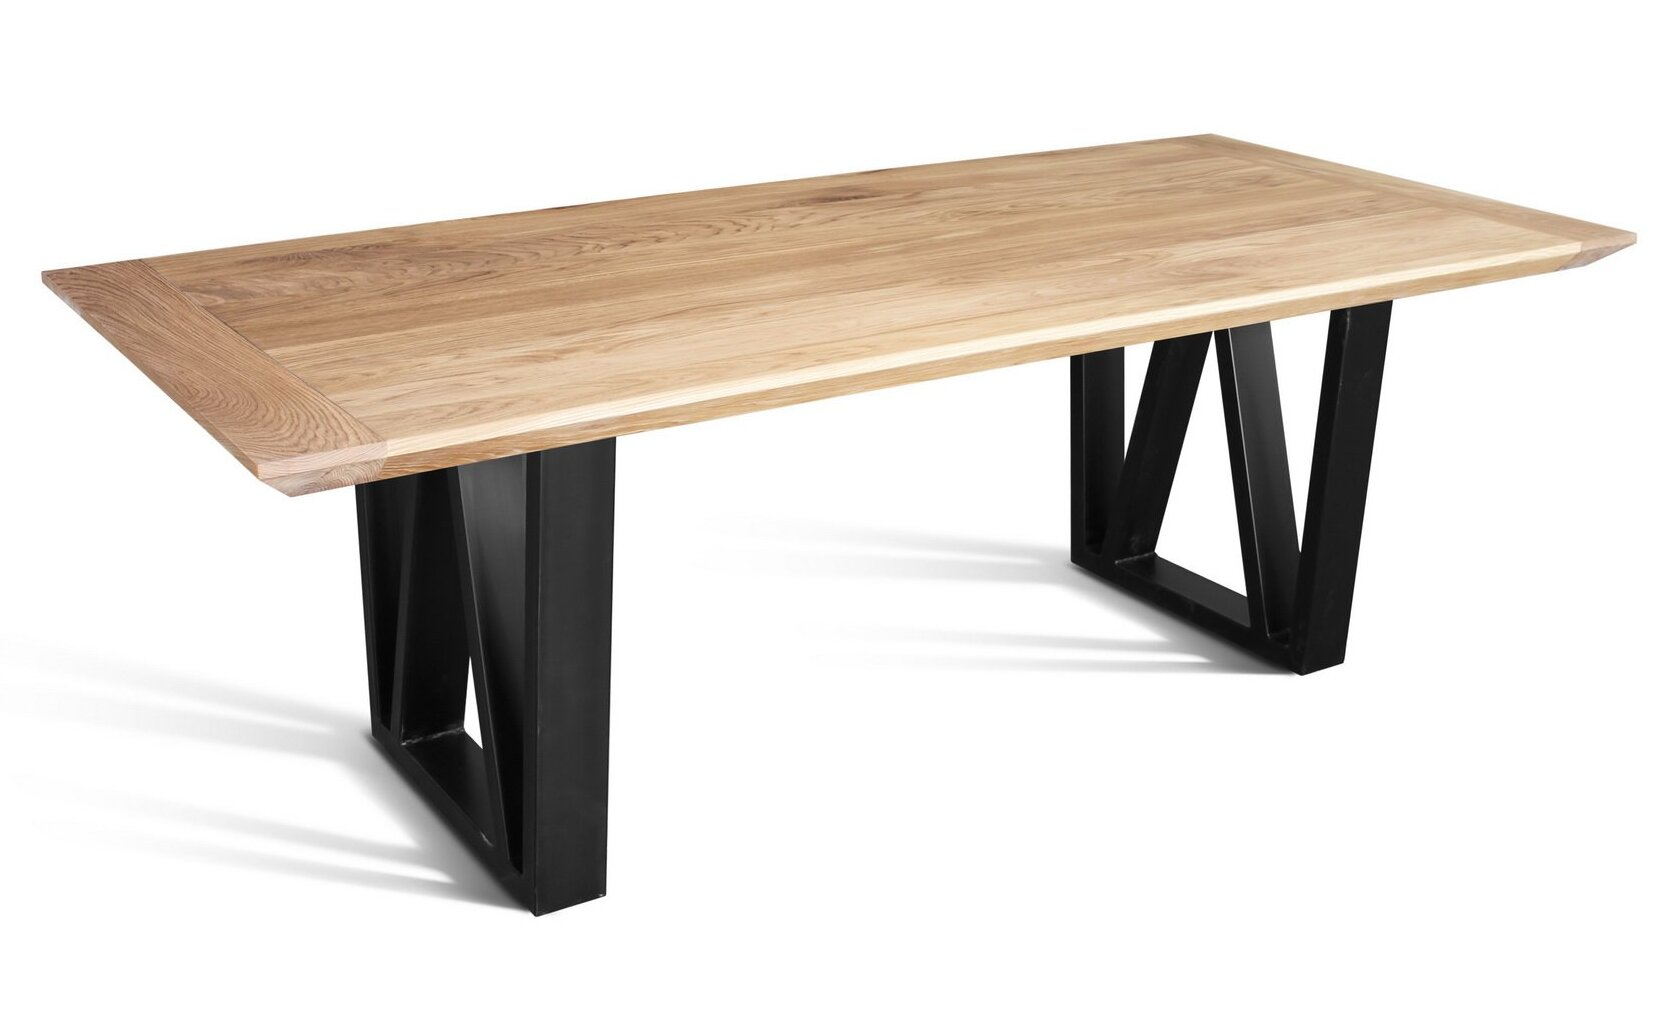 Double Pedestal Oak Commercial Dining Tables You Ll Love In 2021 Wayfair